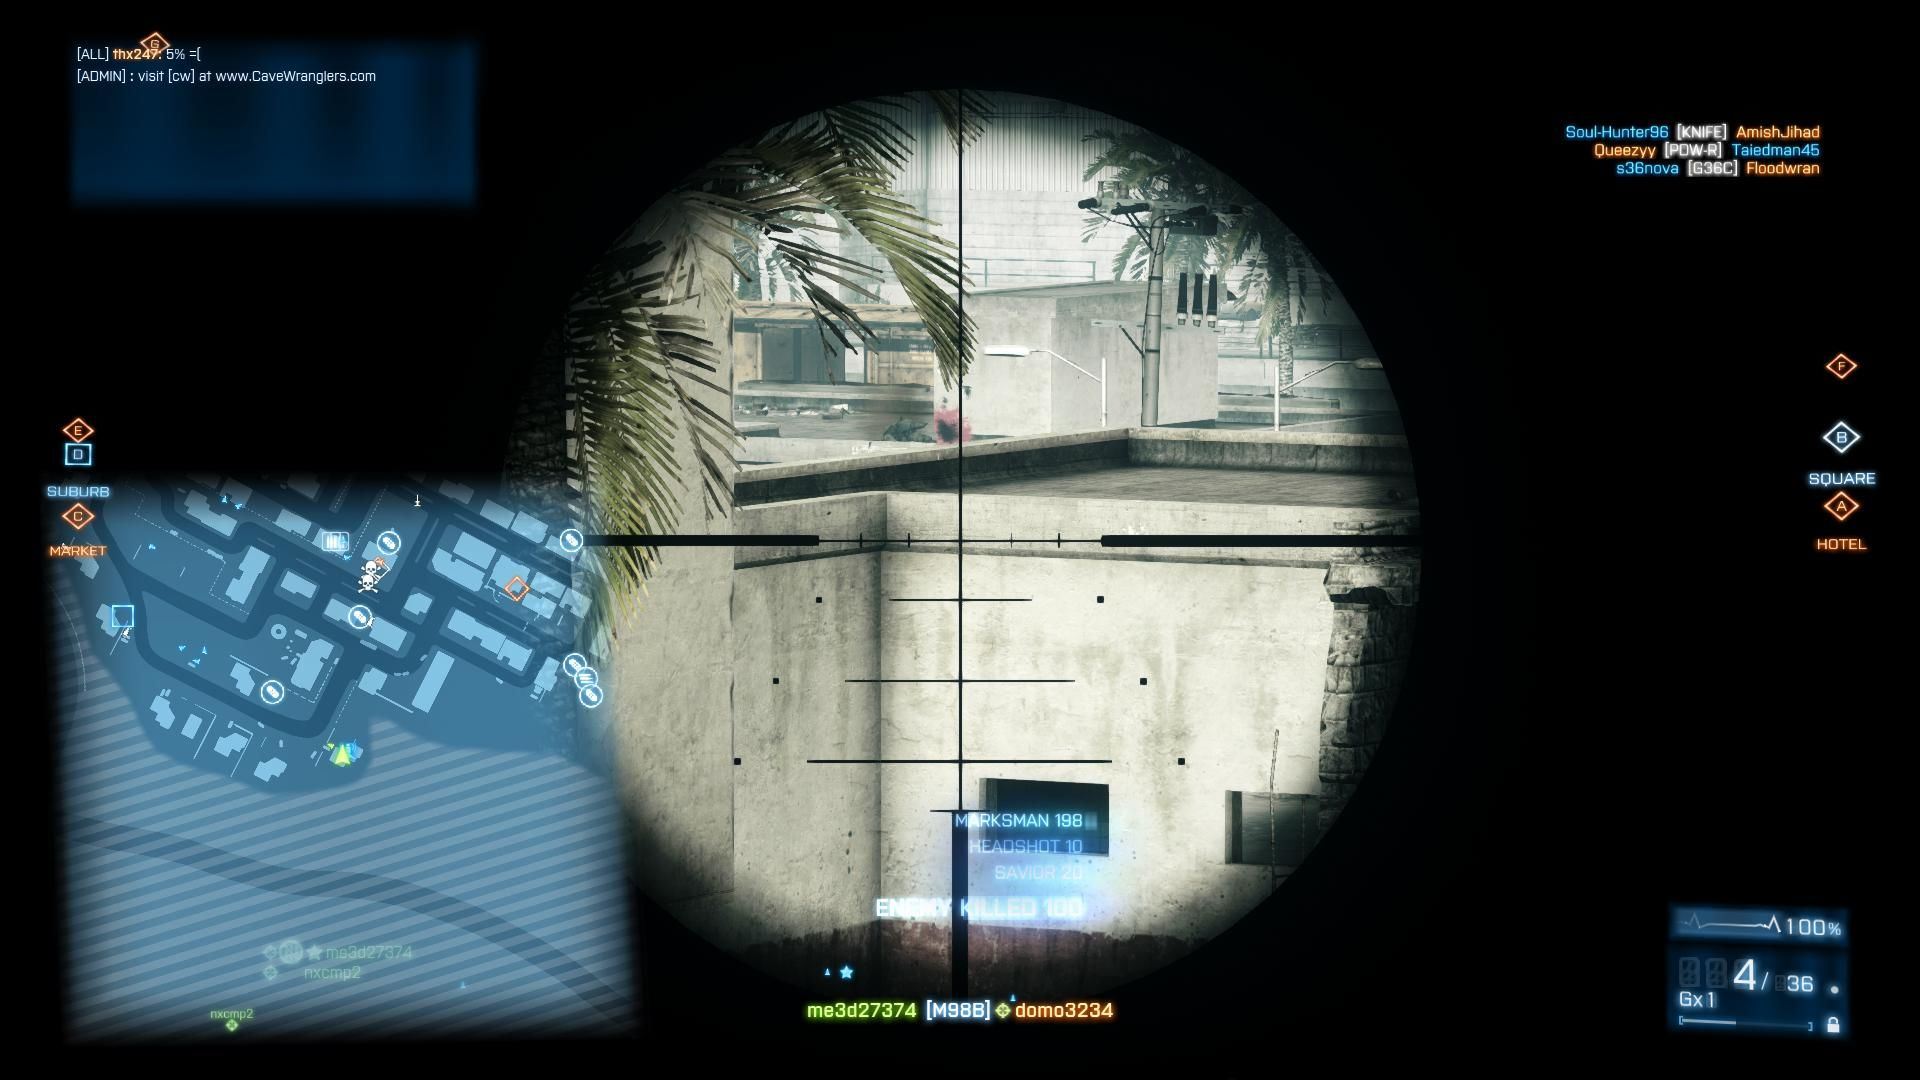 Battlefield 3: Back to Karkand Windows Another M98B Sniper shot - the new Karkand is a very clear environment allowing long range sniping